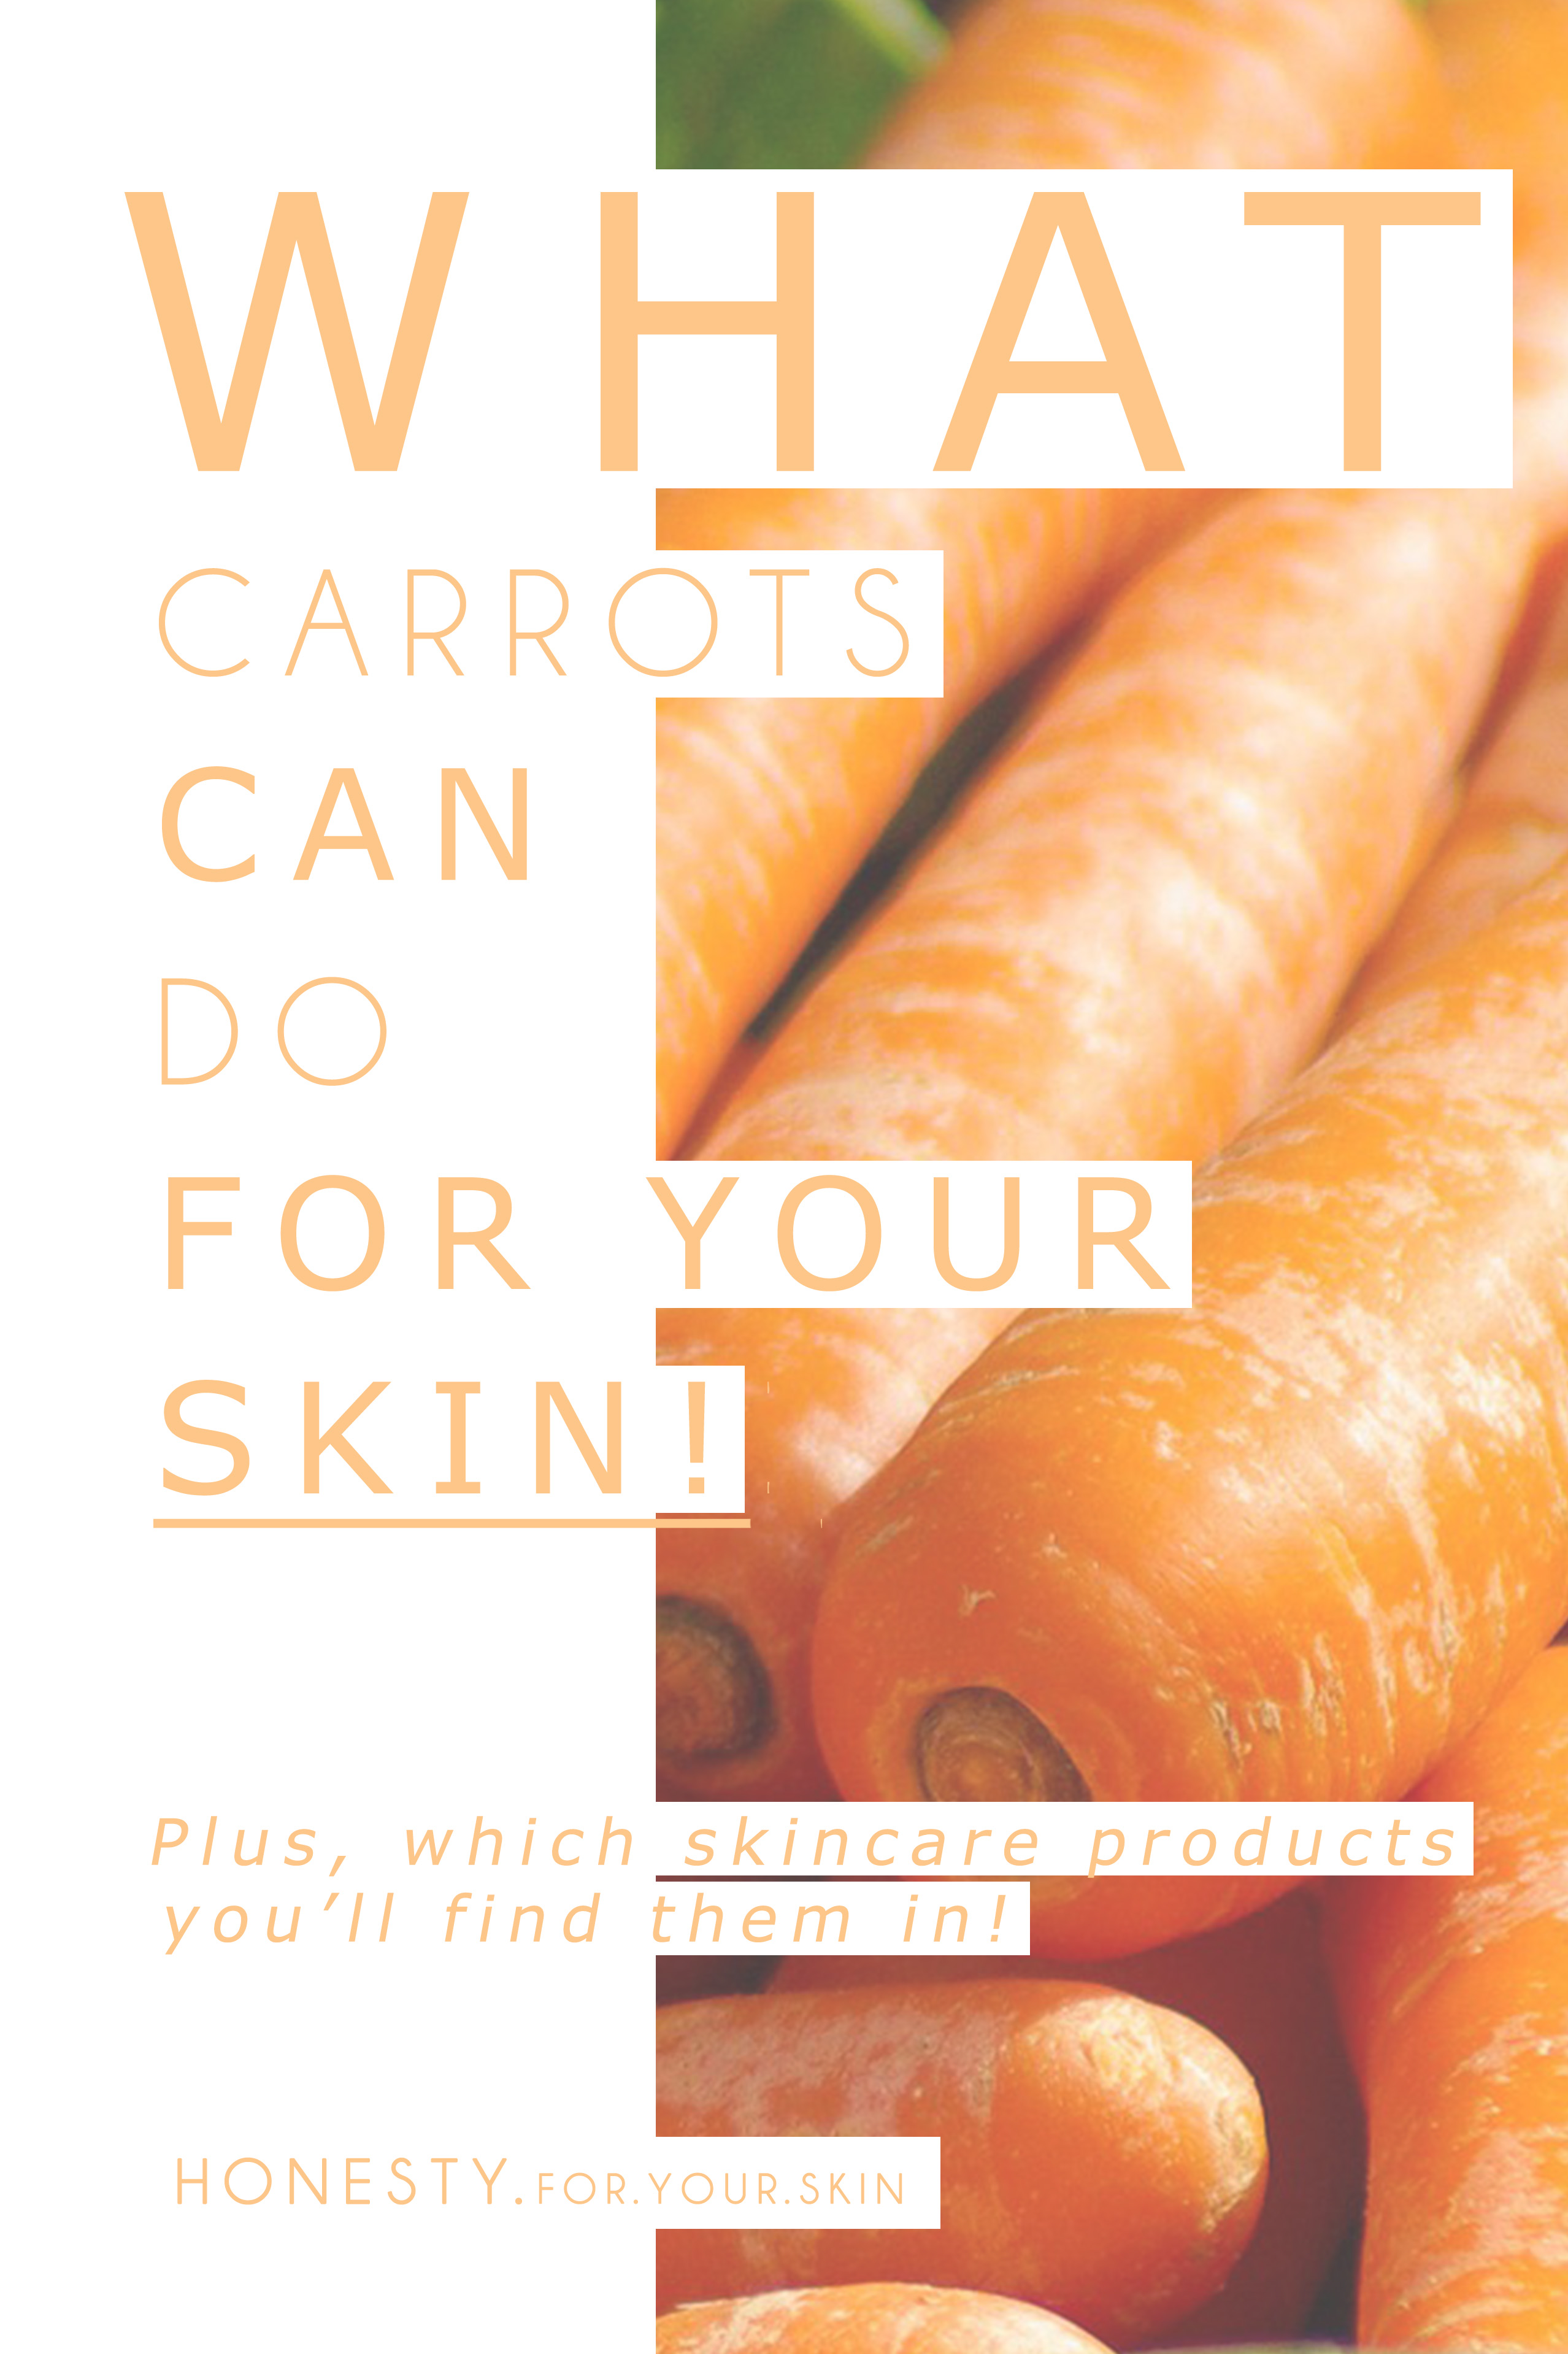 Did ya know, carrots in skincare are YUM for skin. They have some awesome powers for making healthy, young skin!!